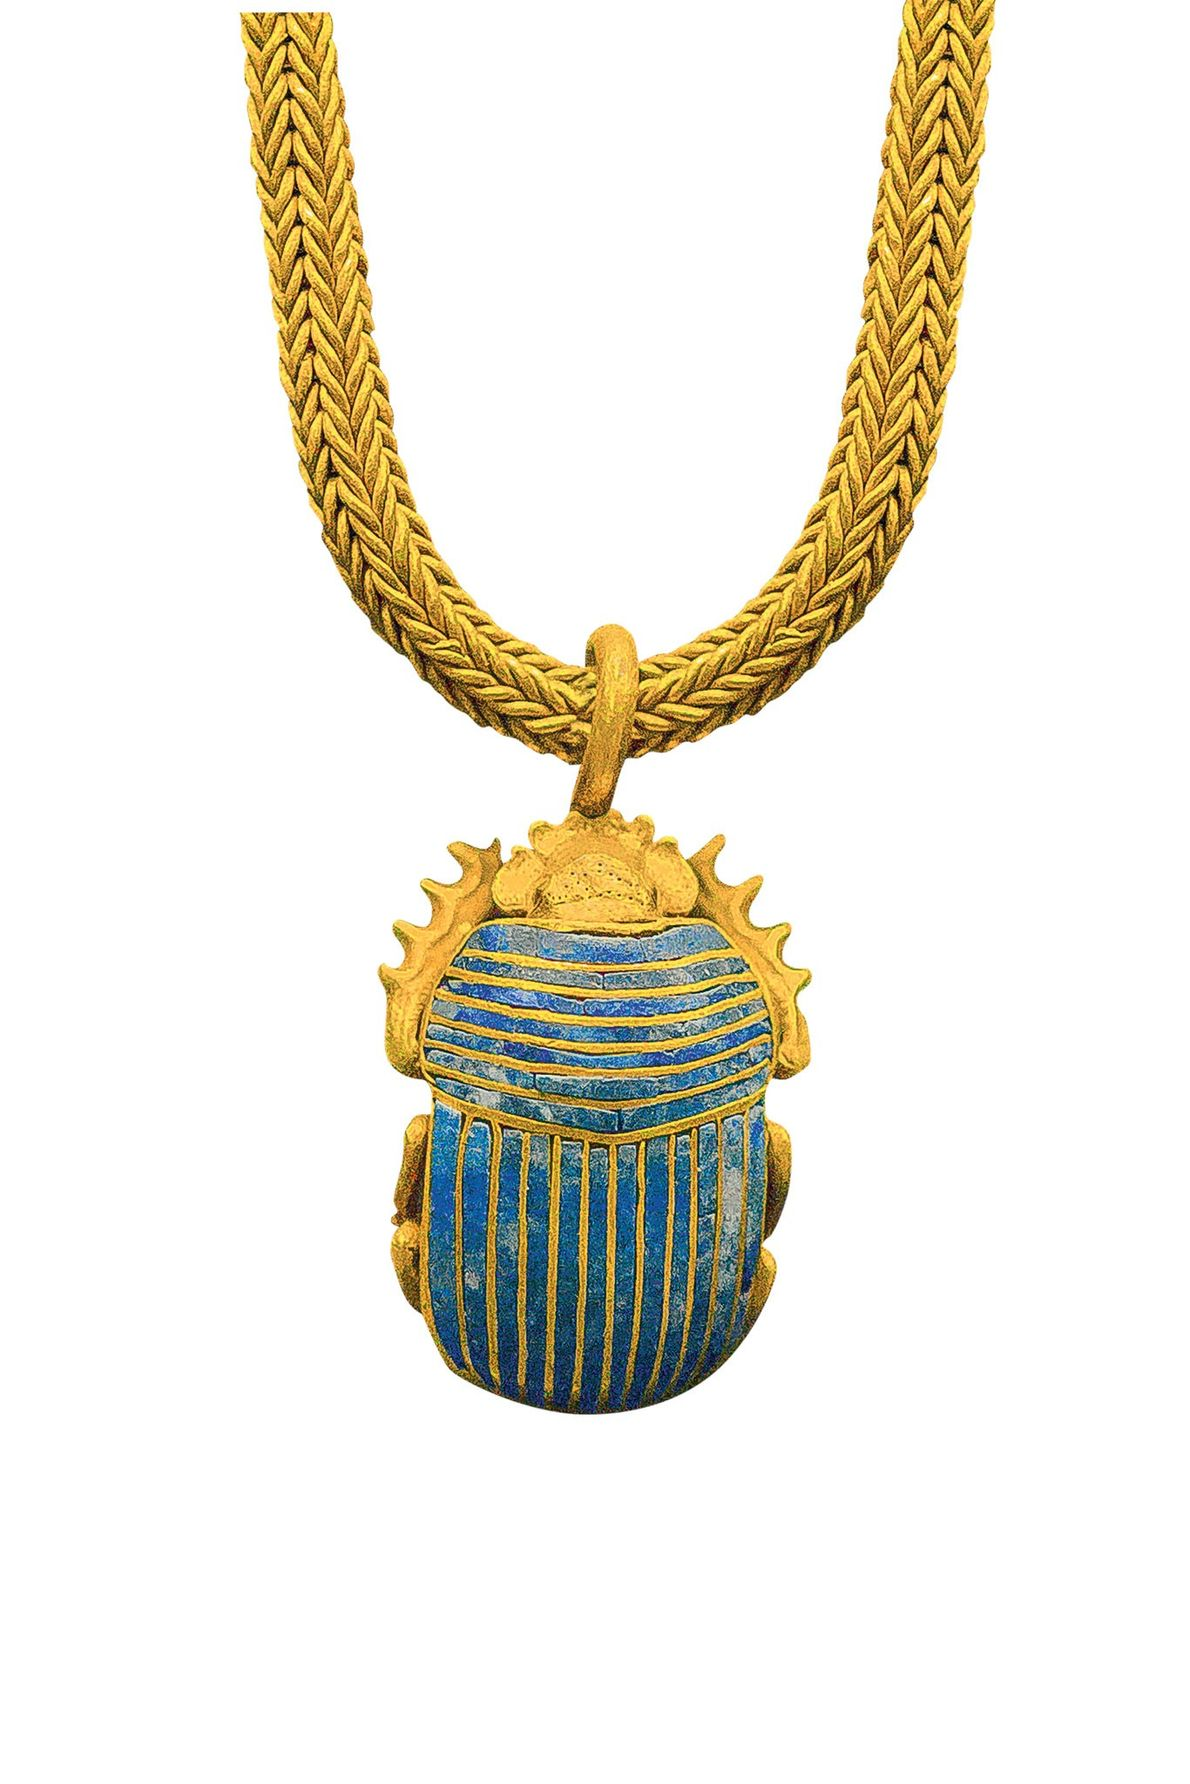 Suspended from a chain, this gold and lapis lazuli scarab is a symbol of rebirth in ...